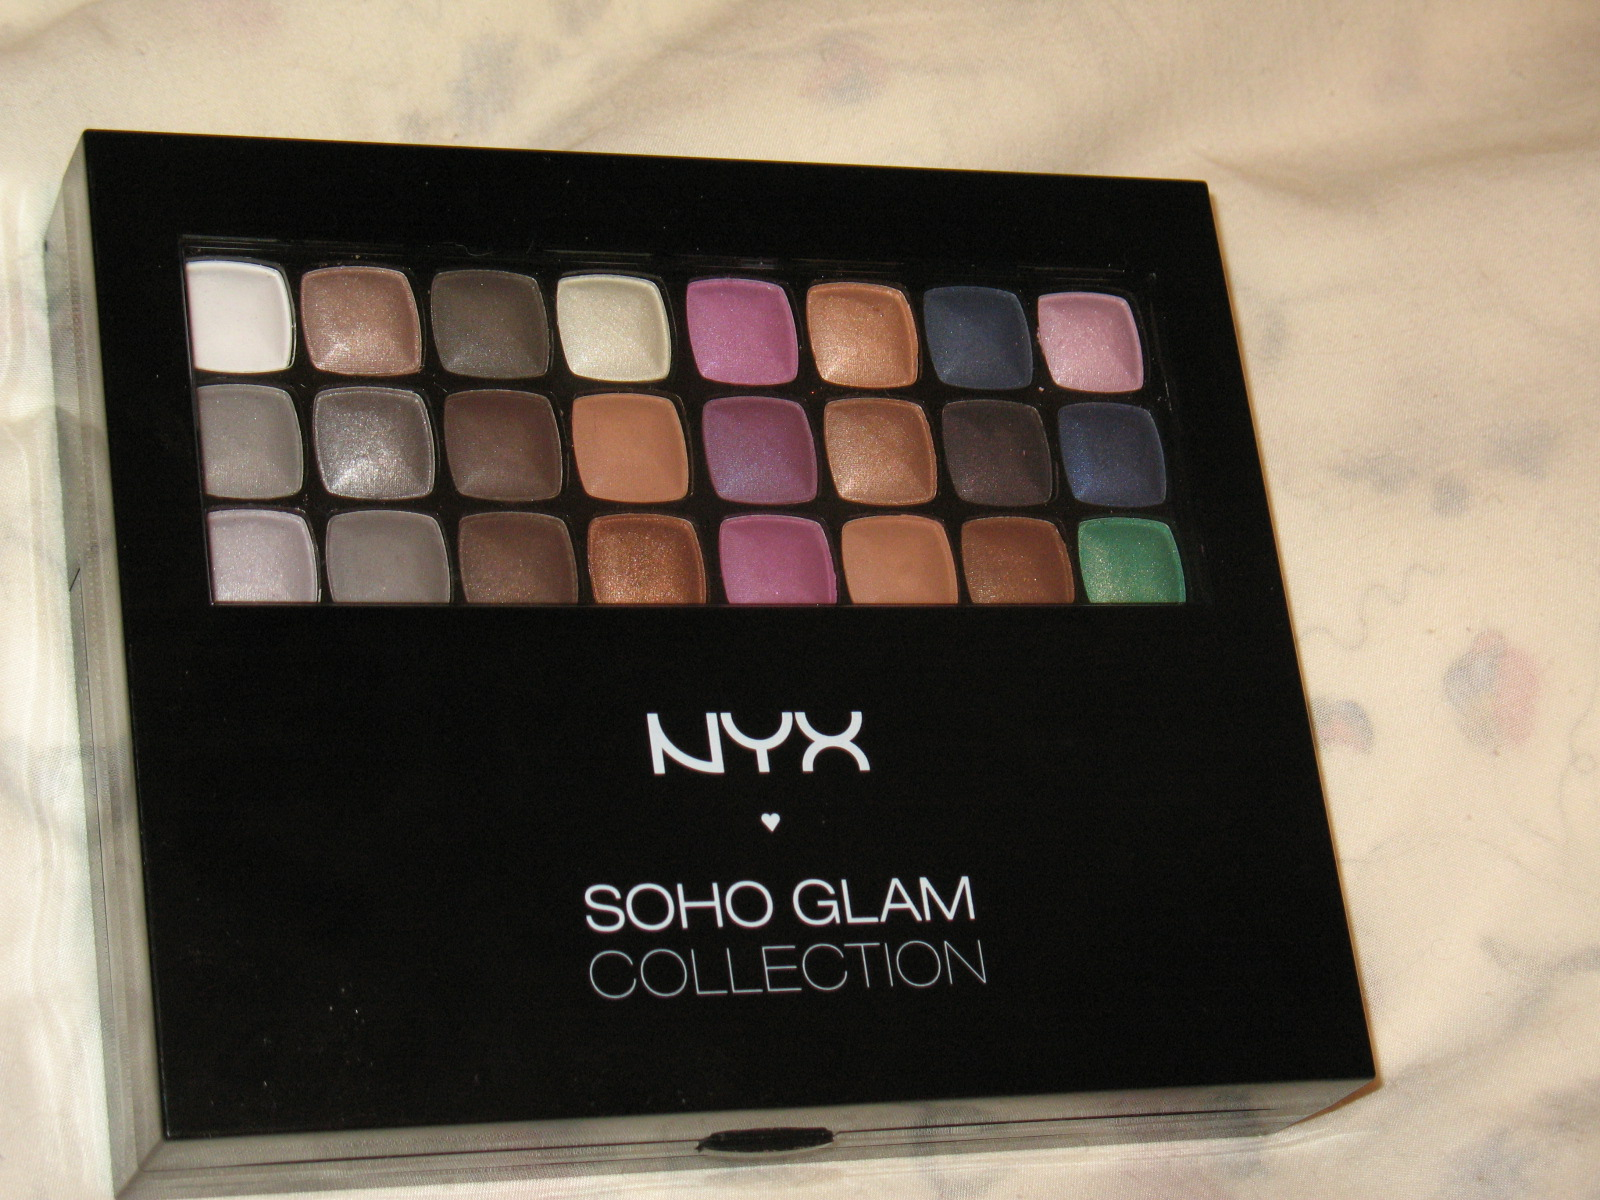 Nyx Soho Glam Collection